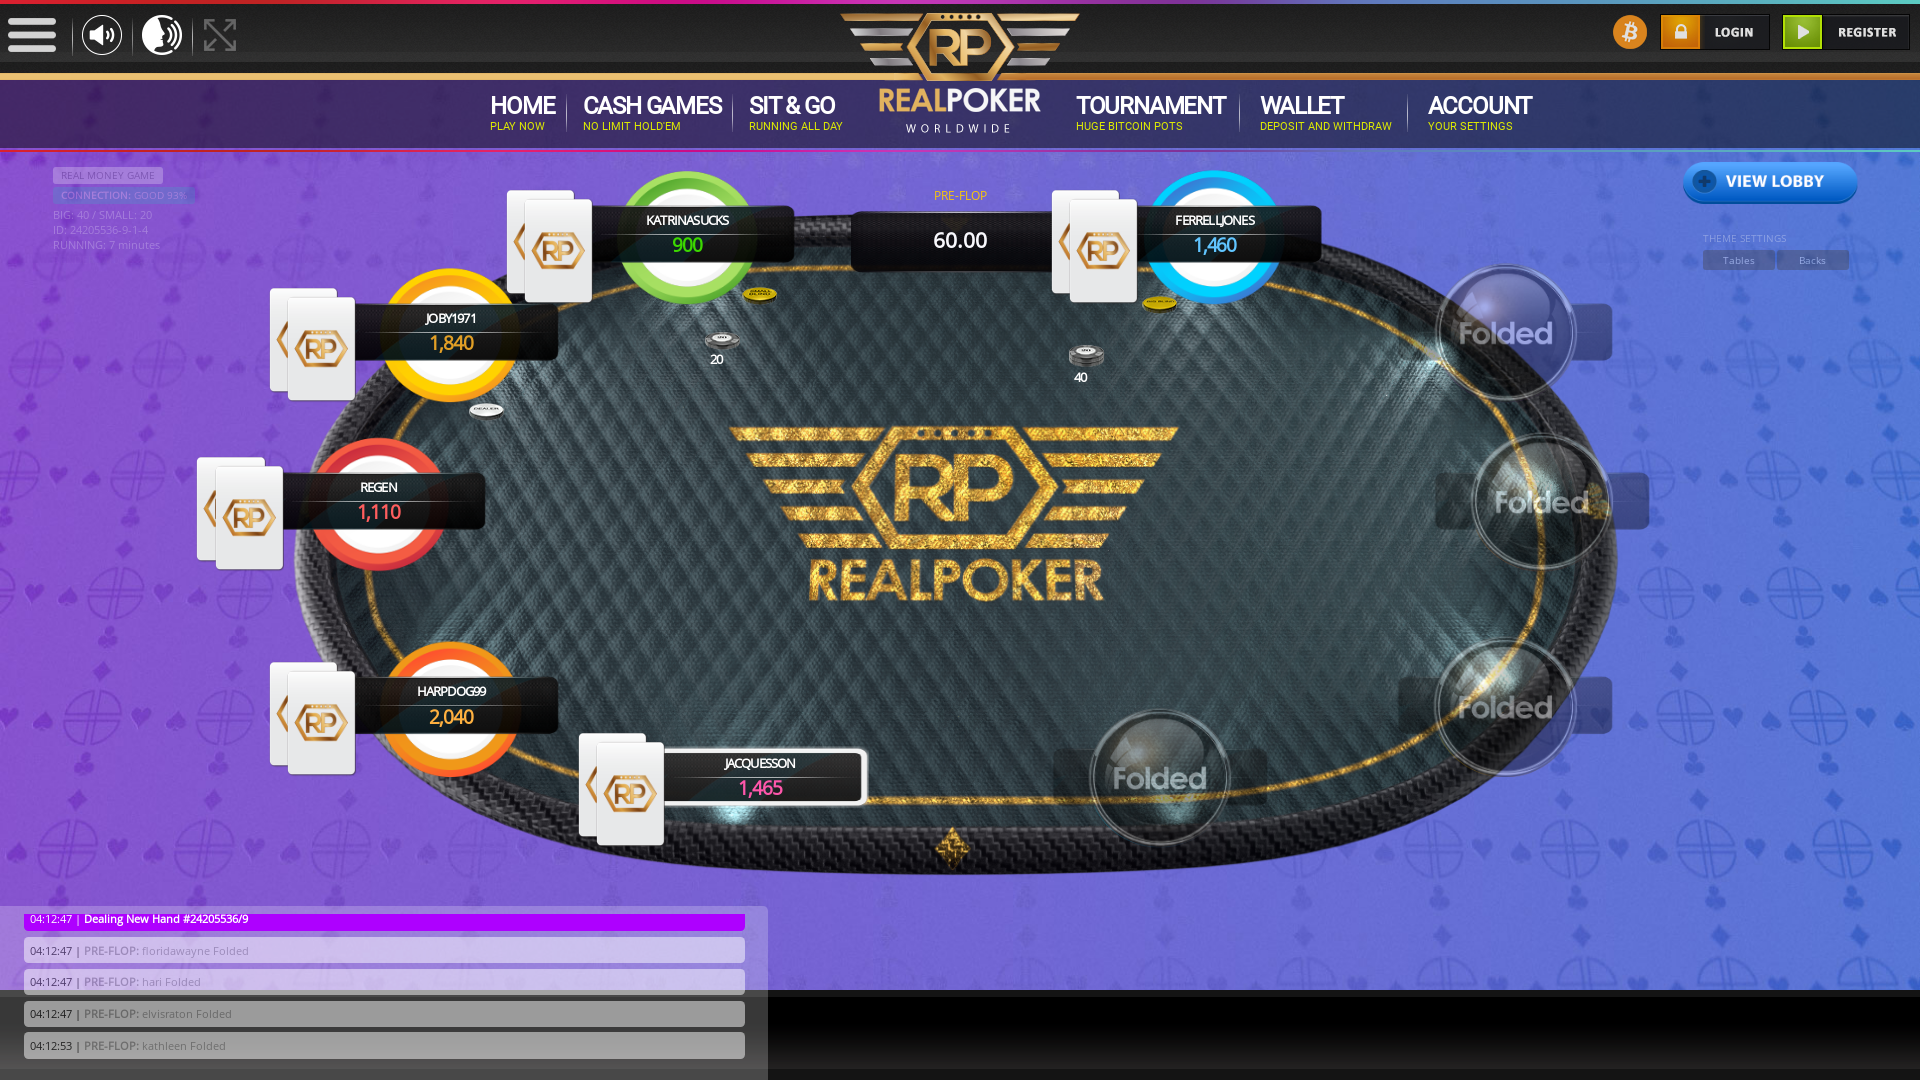 United Kingdom BTC Poker from September